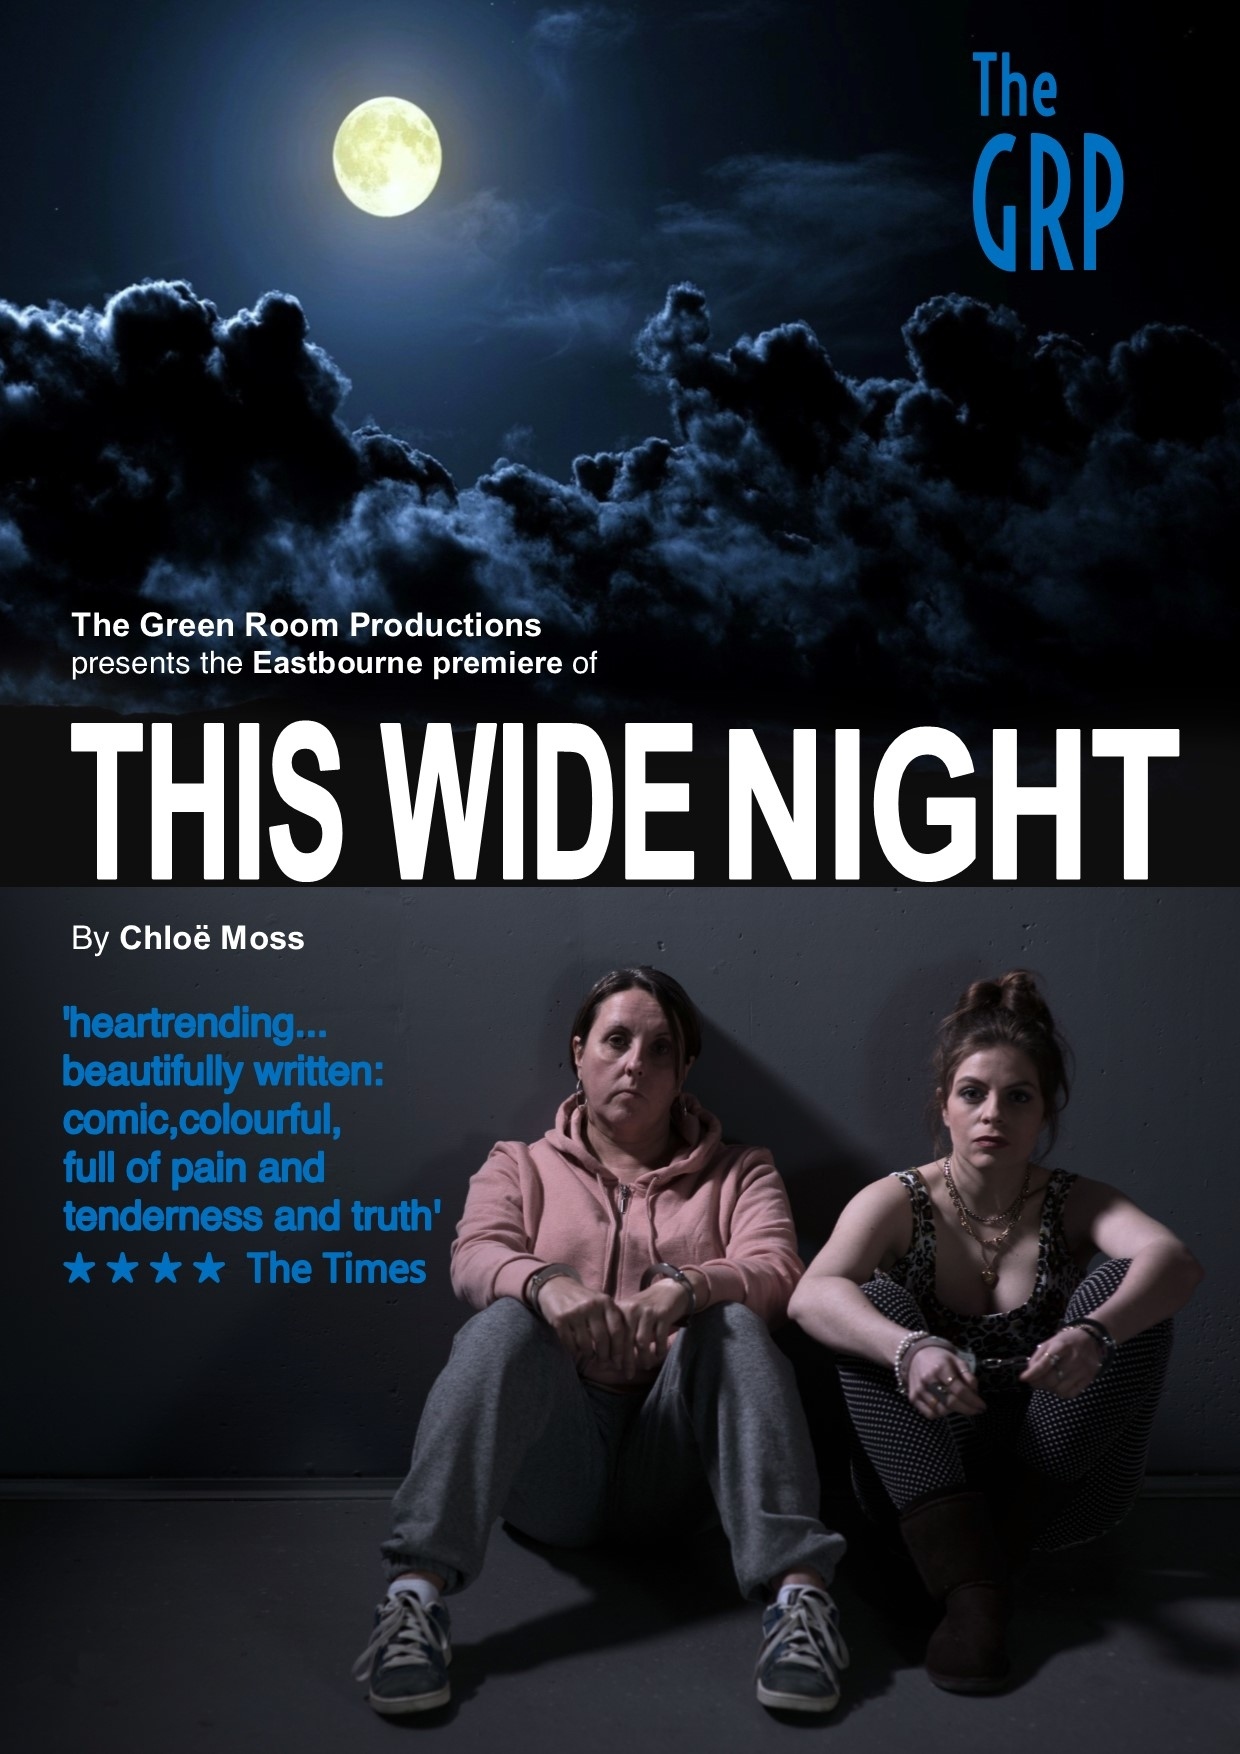 This Wide Night - The Green Room Productions, Eastbourne